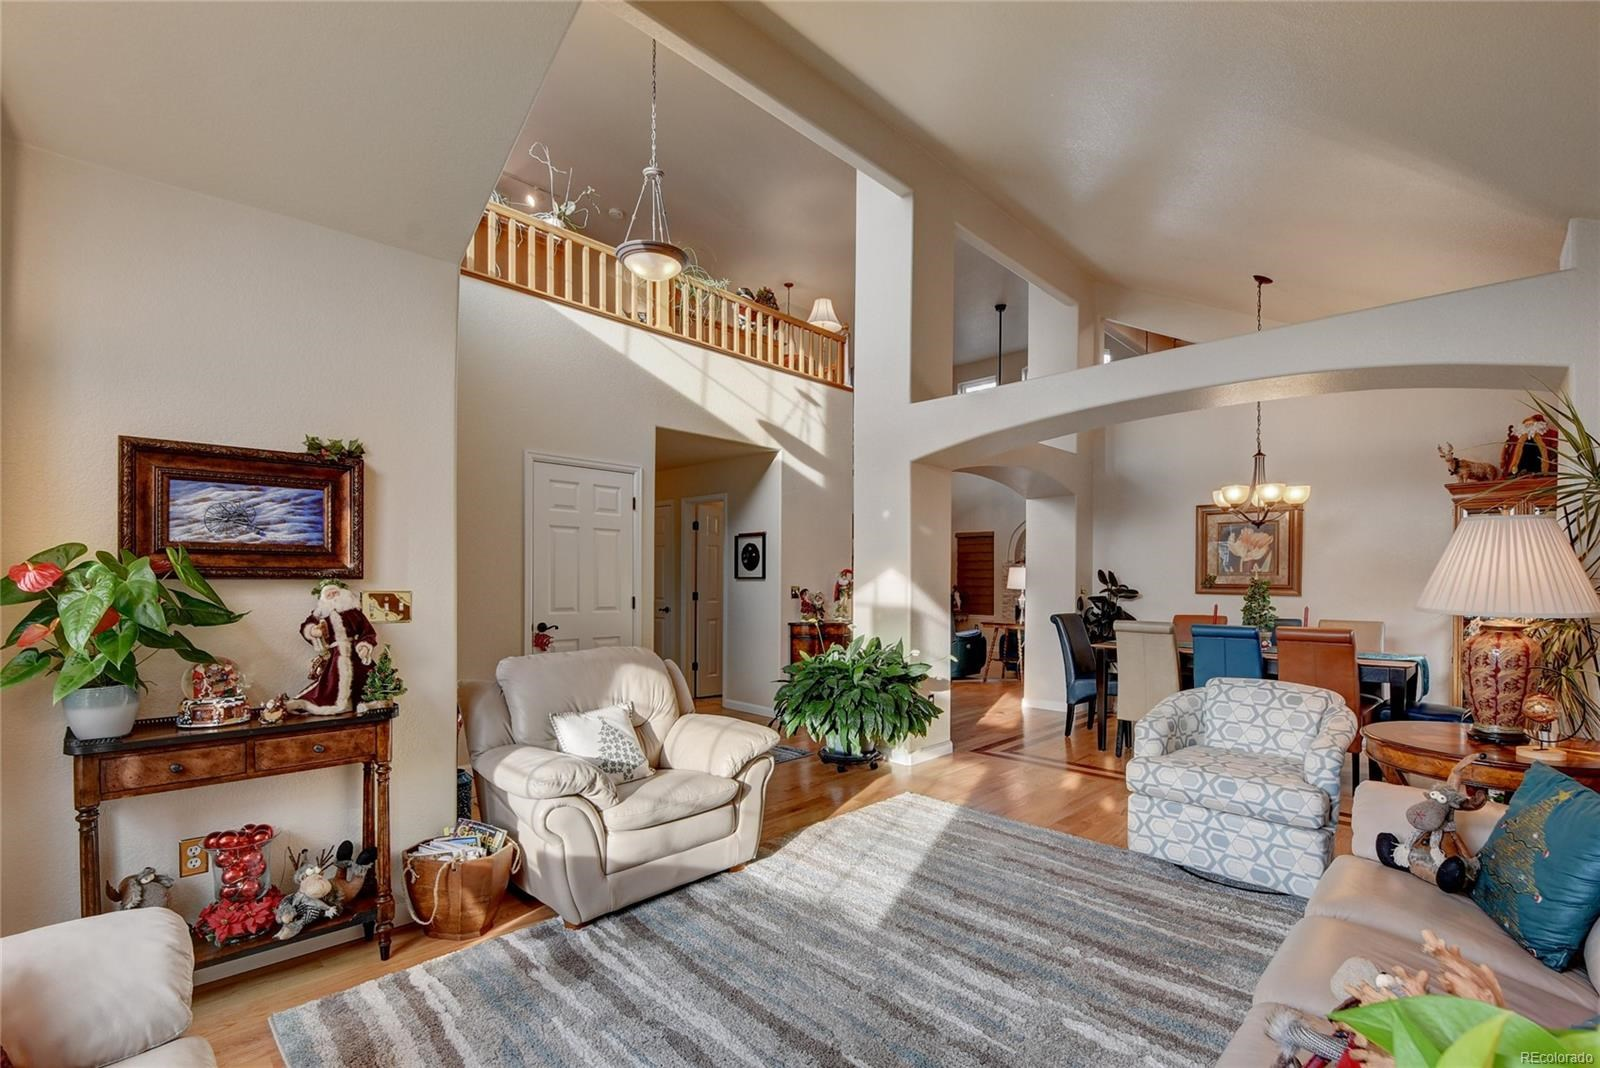 MLS# 9913436 - 5 - 5726 W 81st Place, Arvada, CO 80003